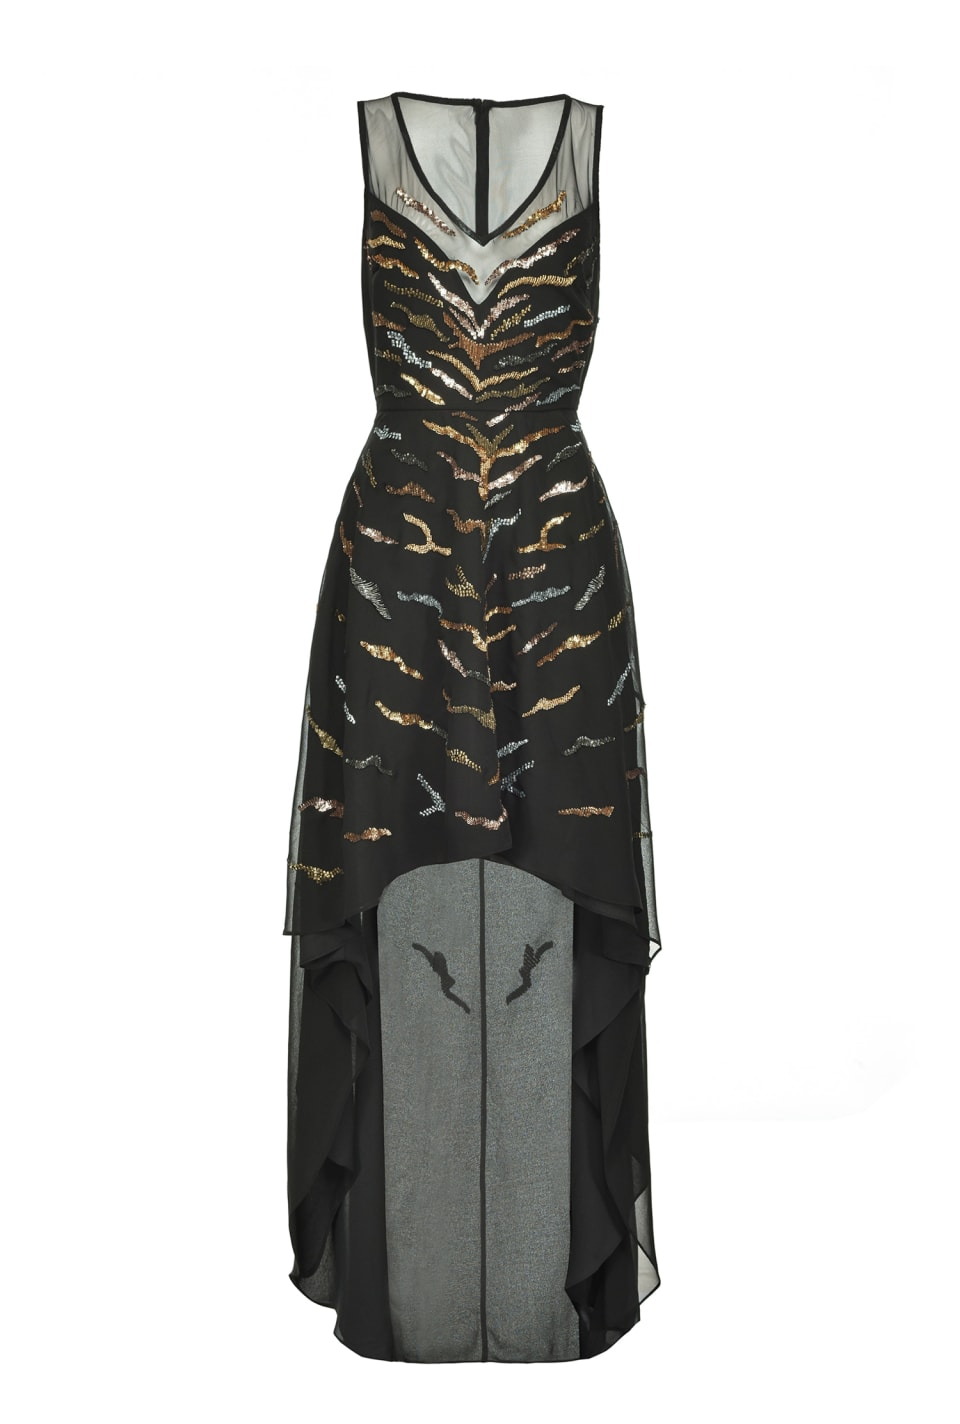 Long tigerskin-embroidery dress - Pinko